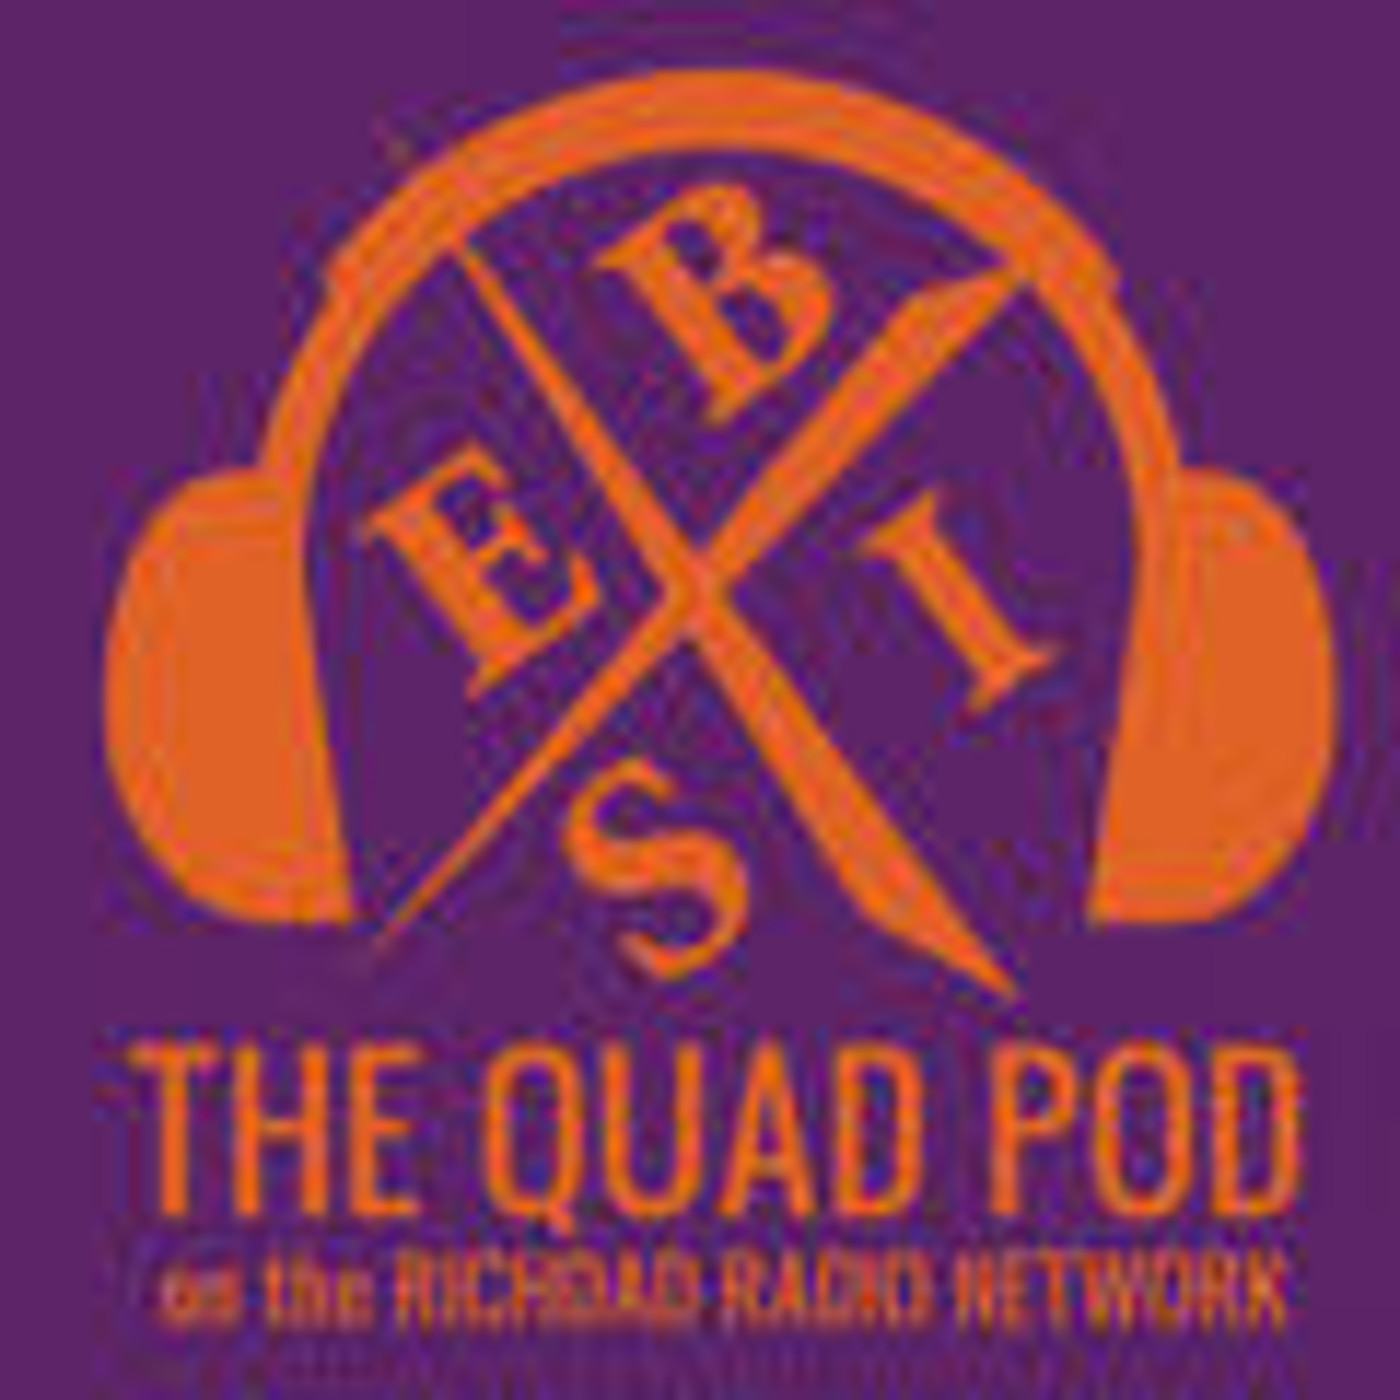 The Rich Dad Radio Network